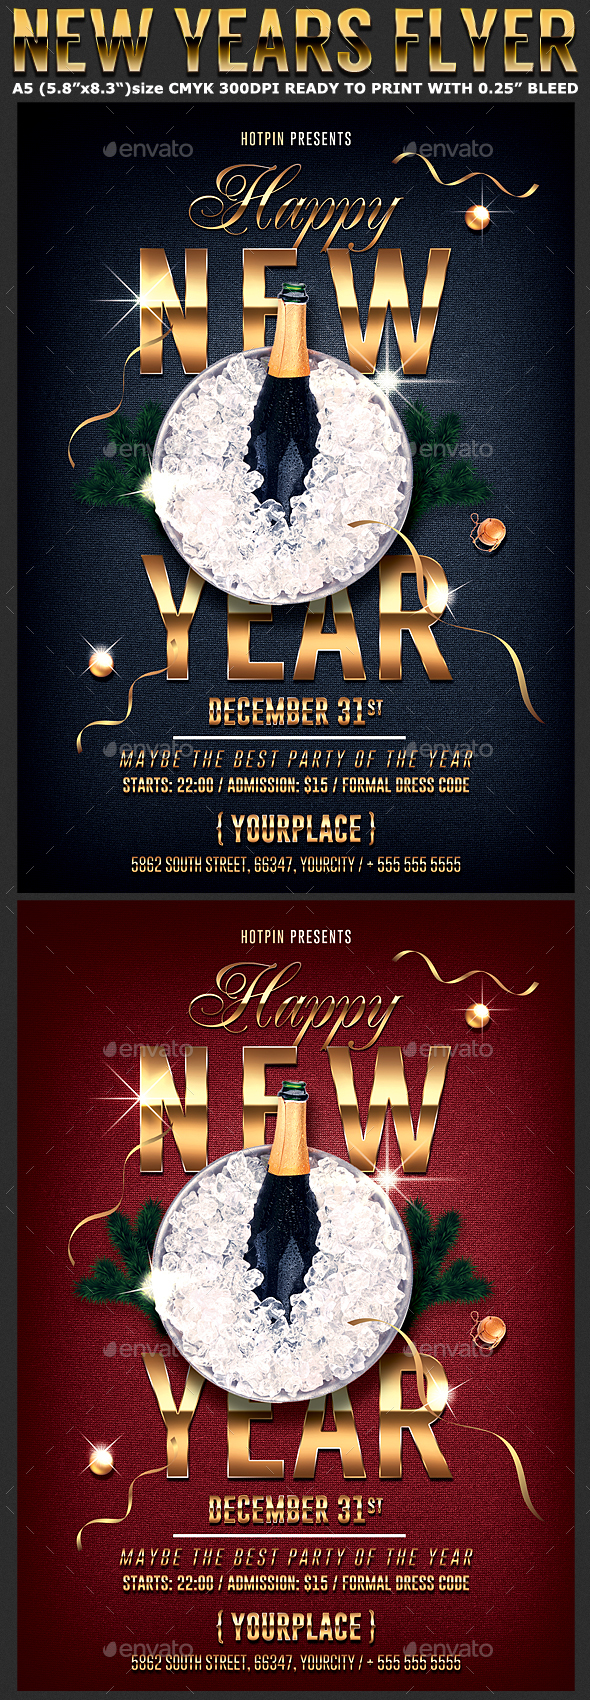 Classy New Year Flyer Template - Clubs & Parties Events